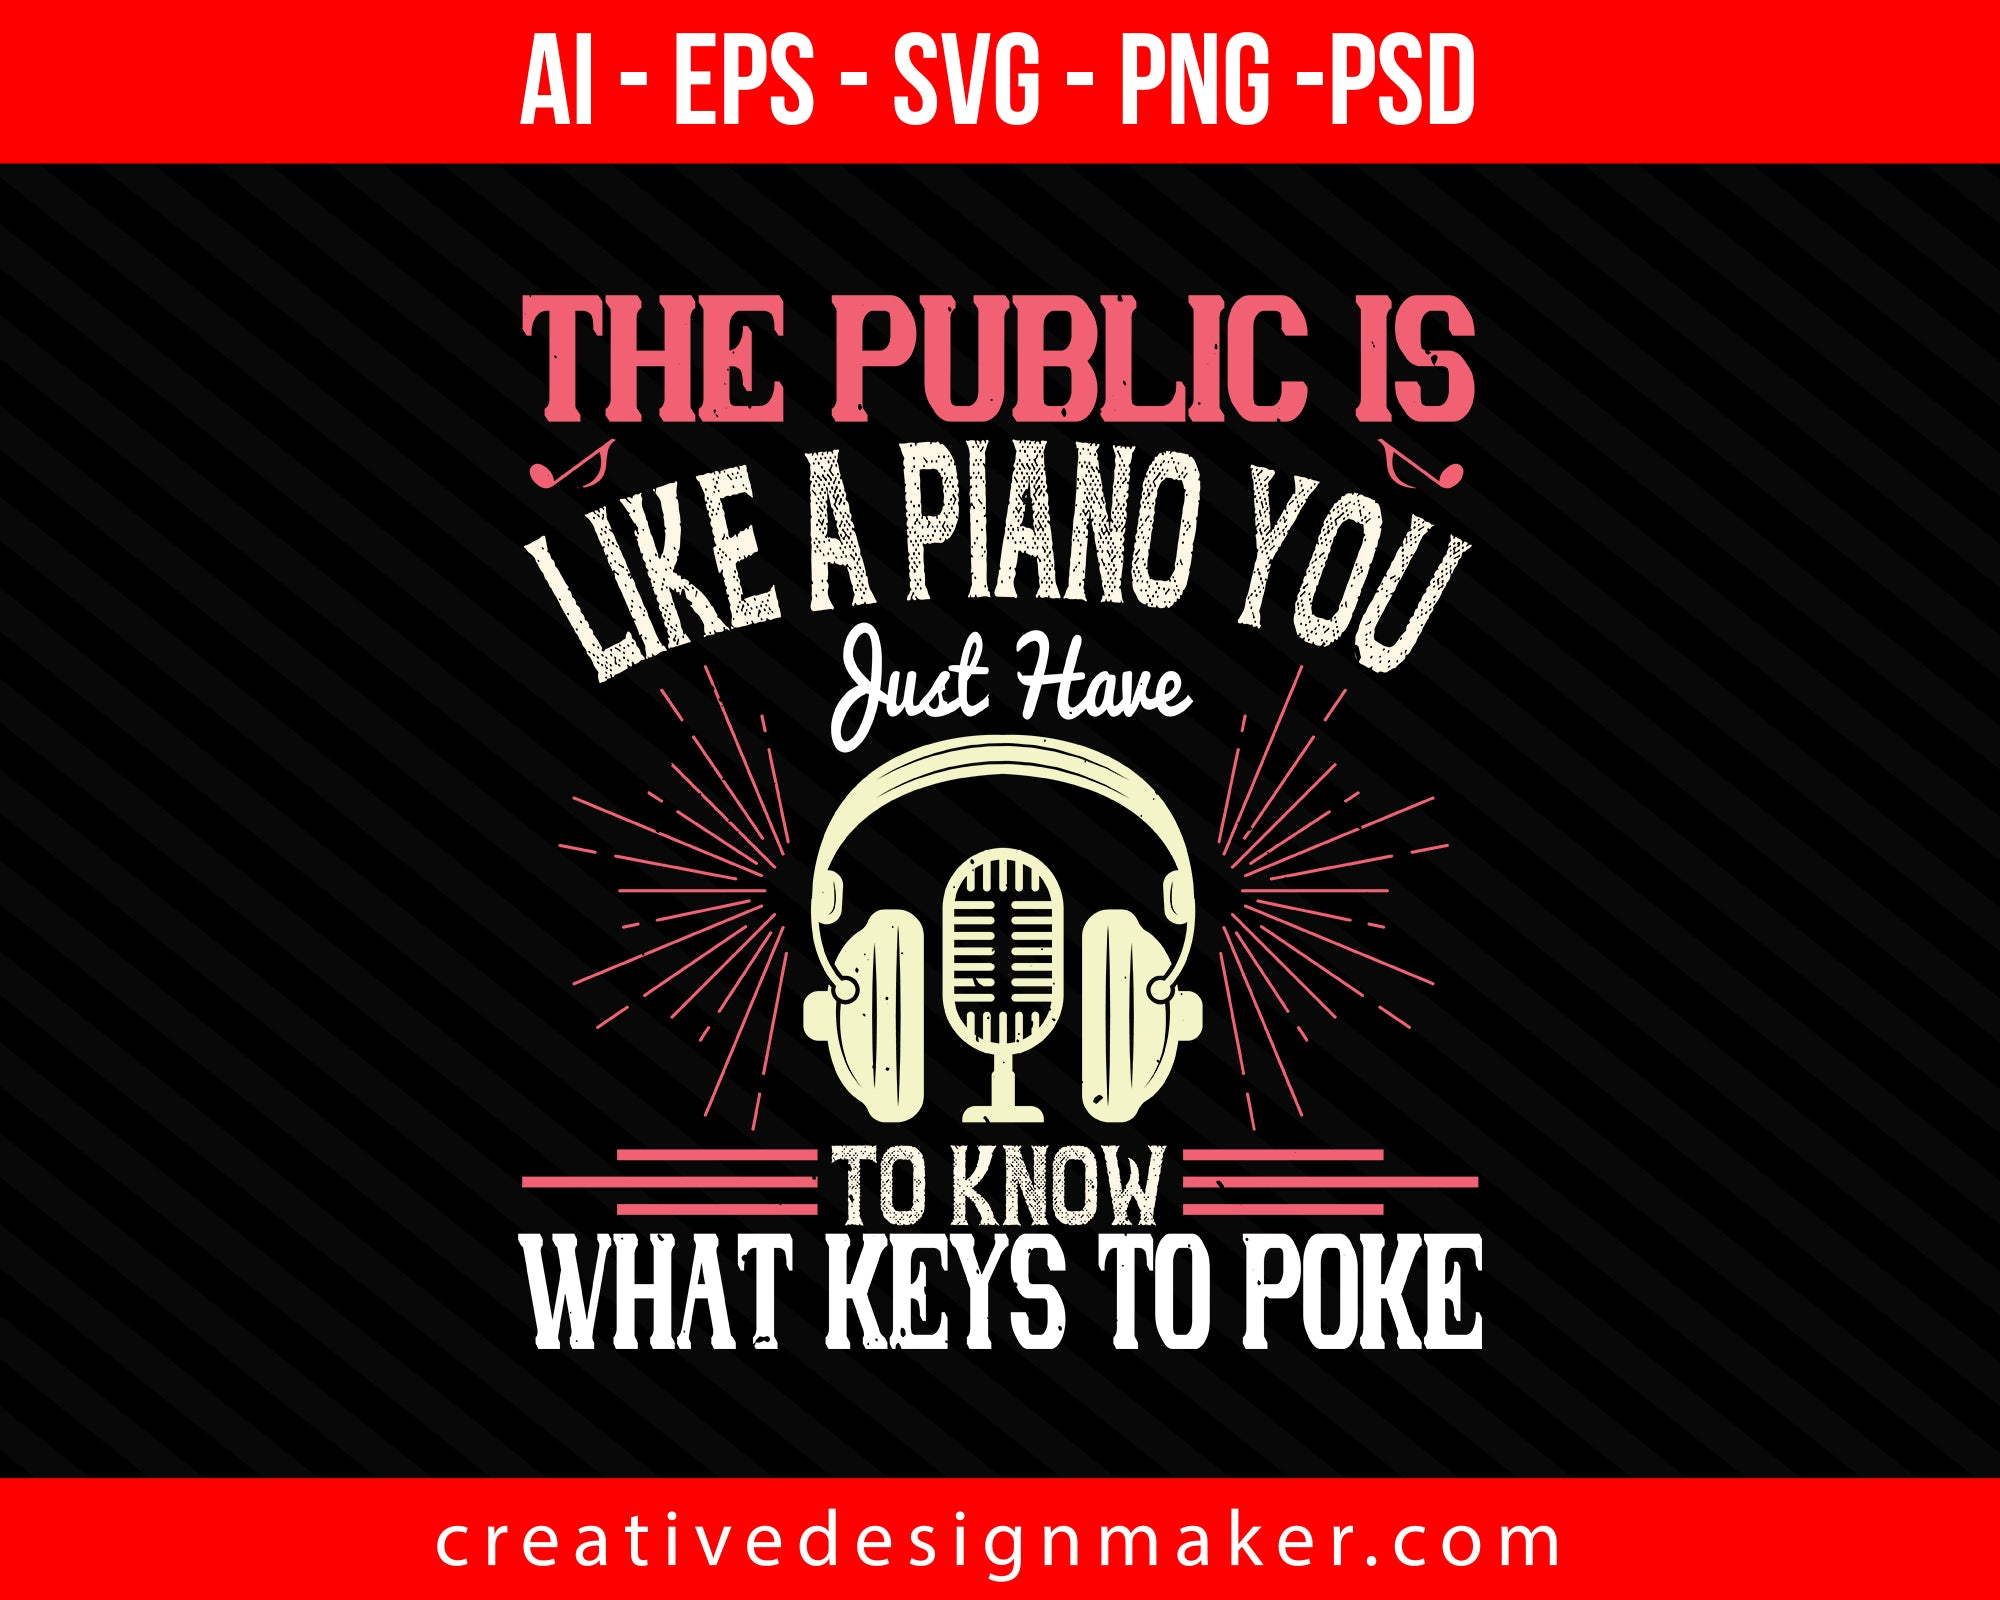 The public is like a piano. You just have to know what keys to poke Print Ready Editable T-Shirt SVG Design!